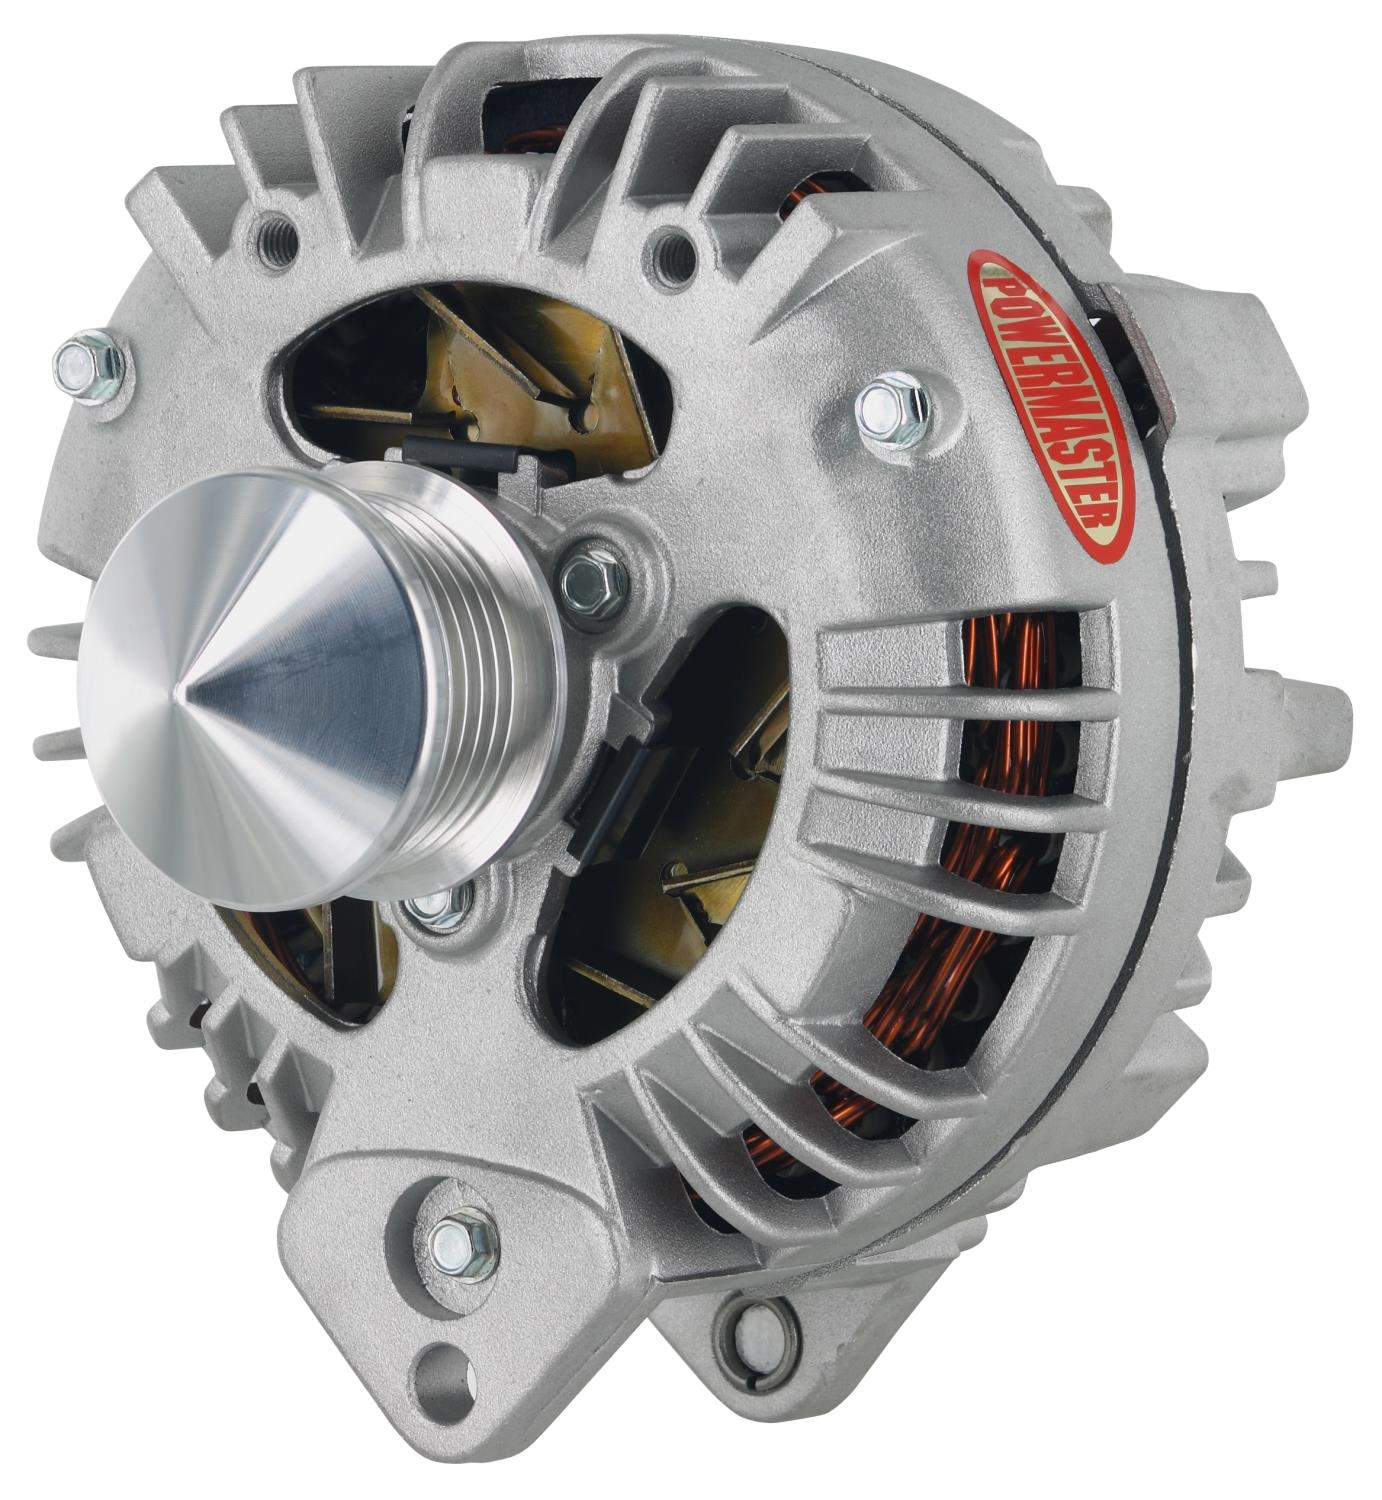 Powermaster 95 Amp Chrysler Square Back Alternator - Natural Finish -  6-Groove 52 mm & Cone, 1-Wire